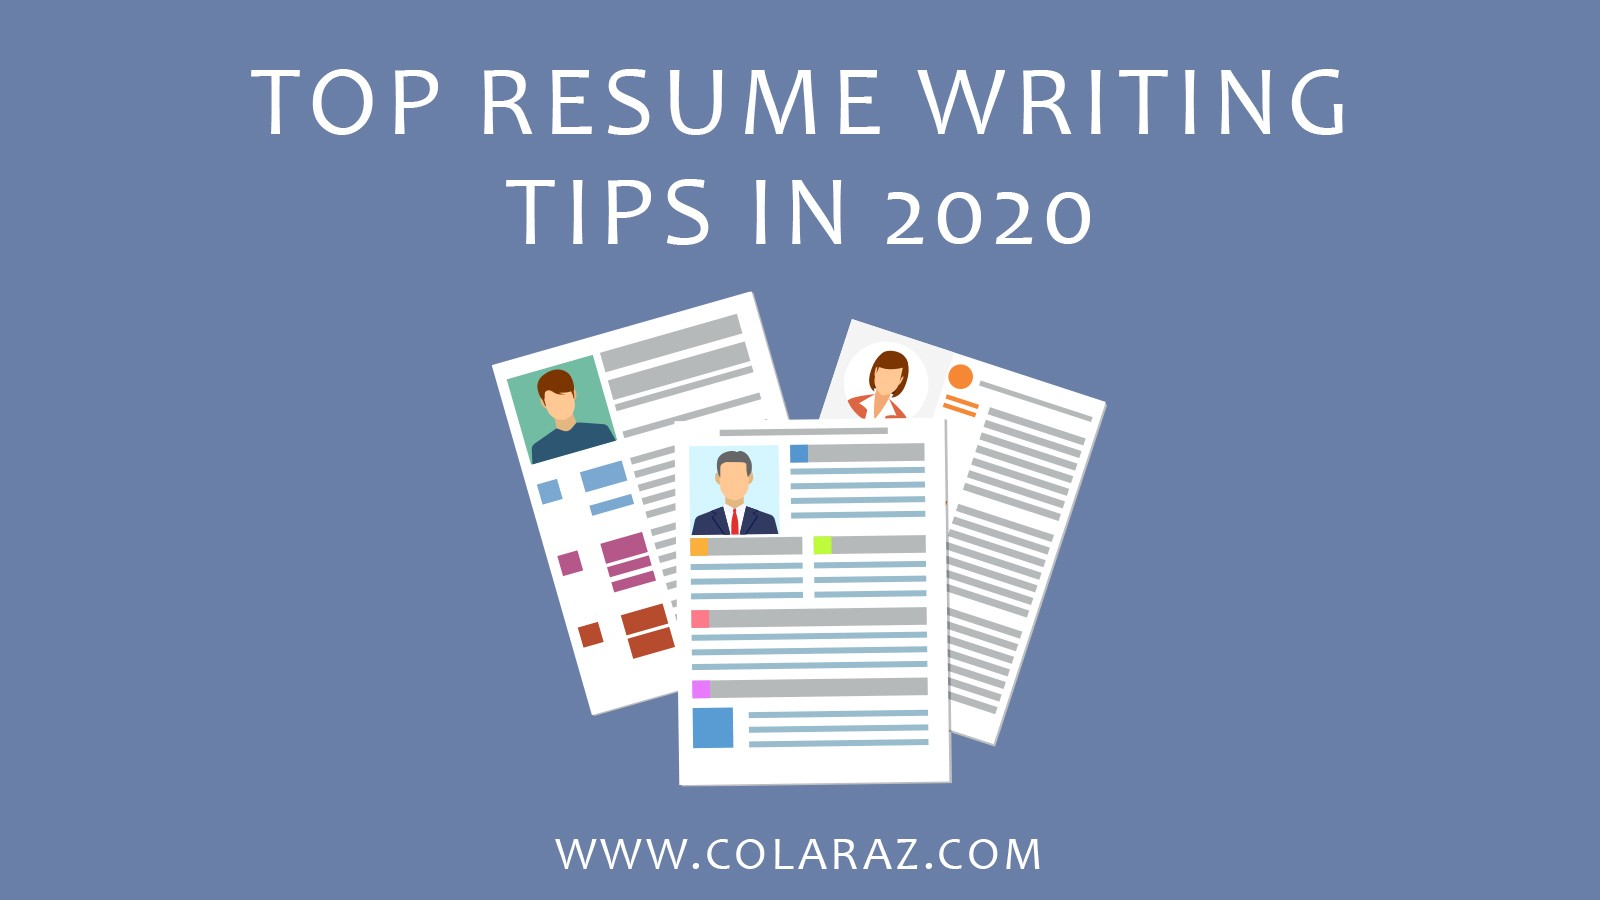 Top Resume Writing Tips In 2020 If You Are Thinking To Step In